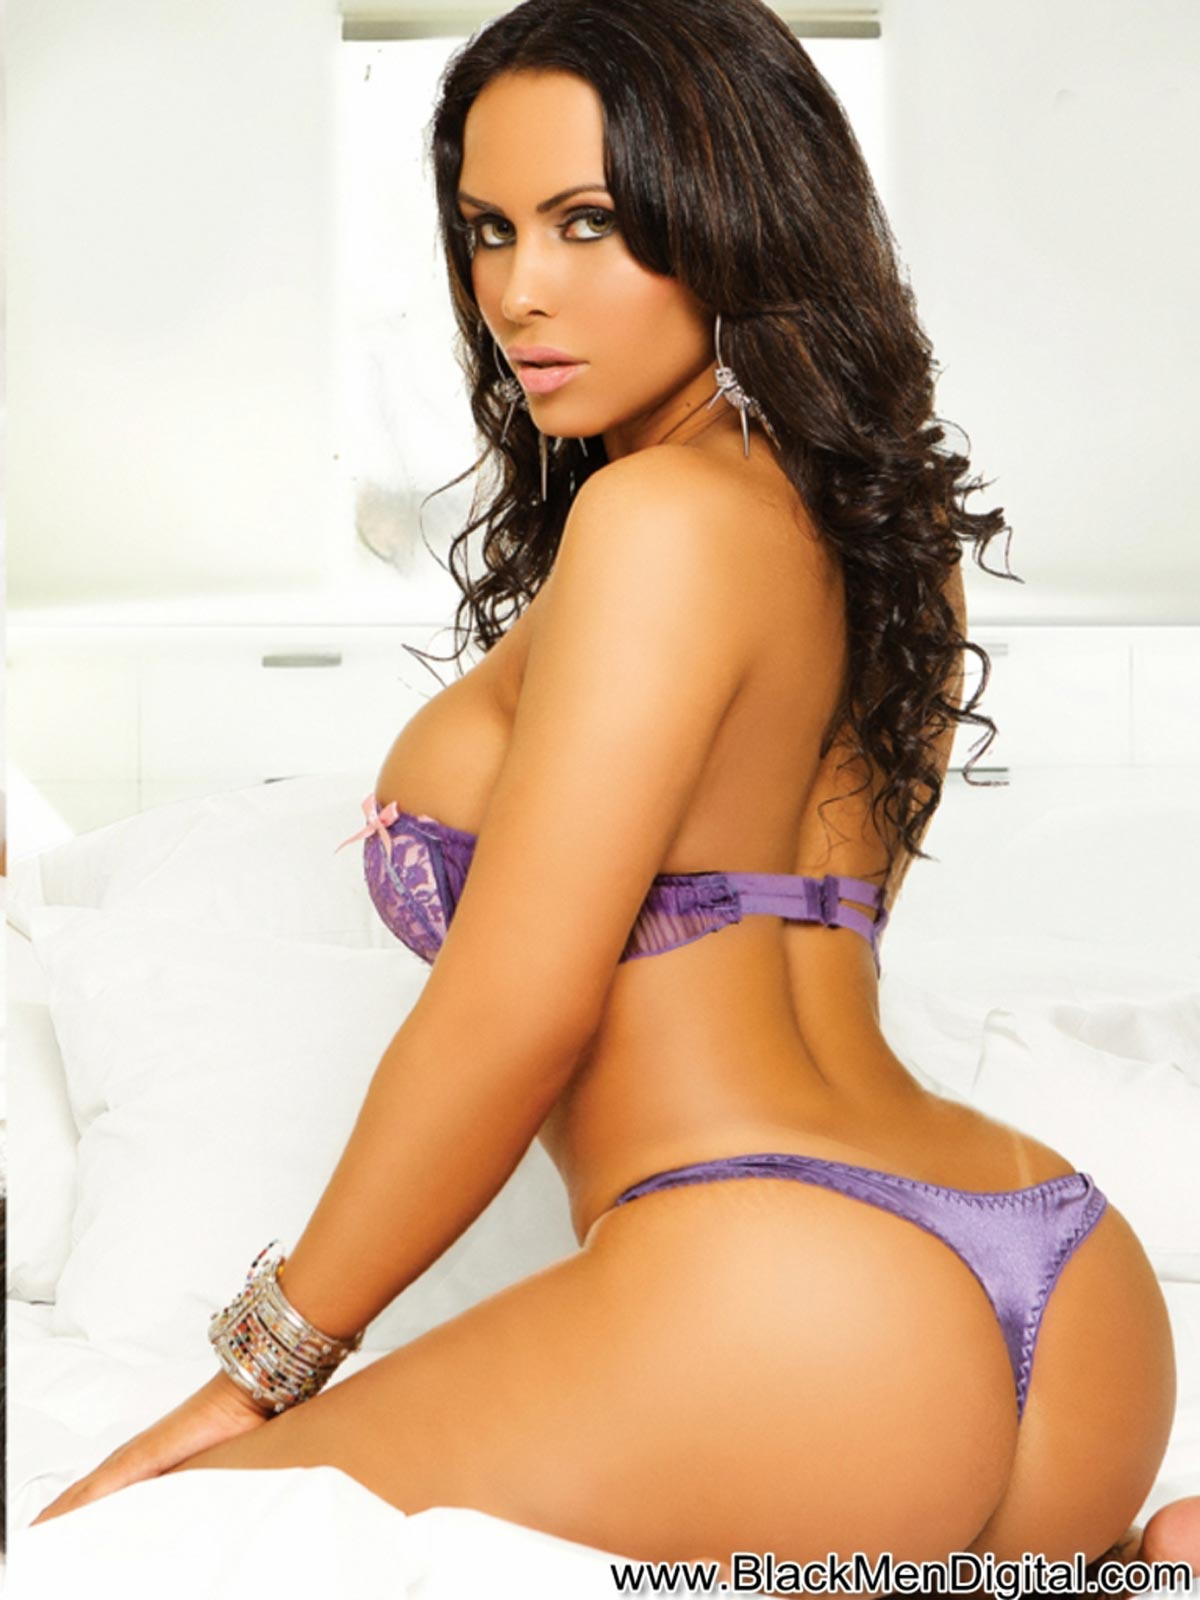 [Image: kat-barberry-blackmendigital-dynastyseries-07.jpg]